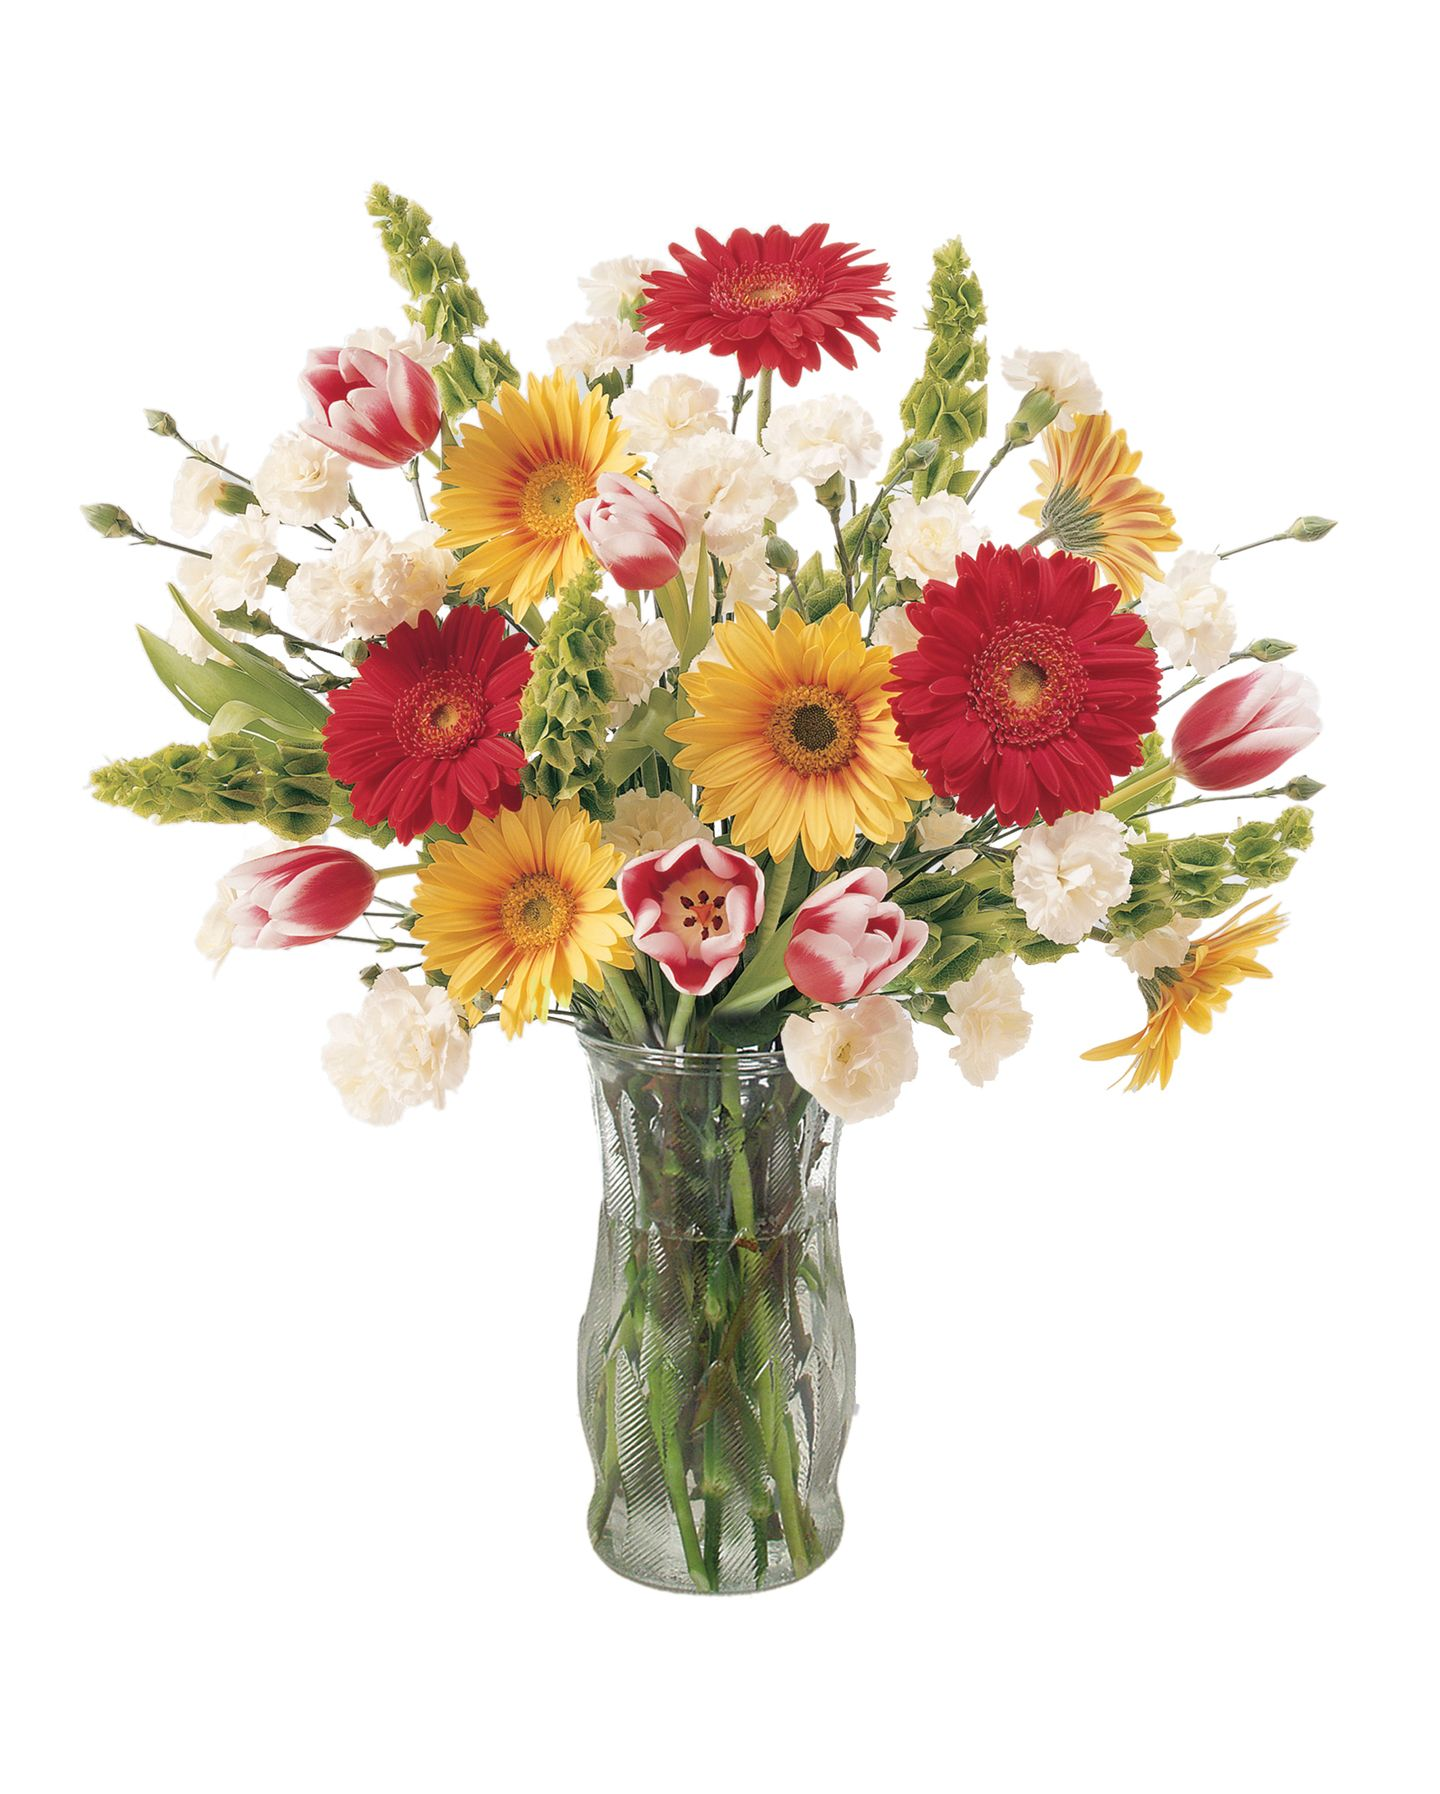 Send a birthday bouquet in a fun gift container to make